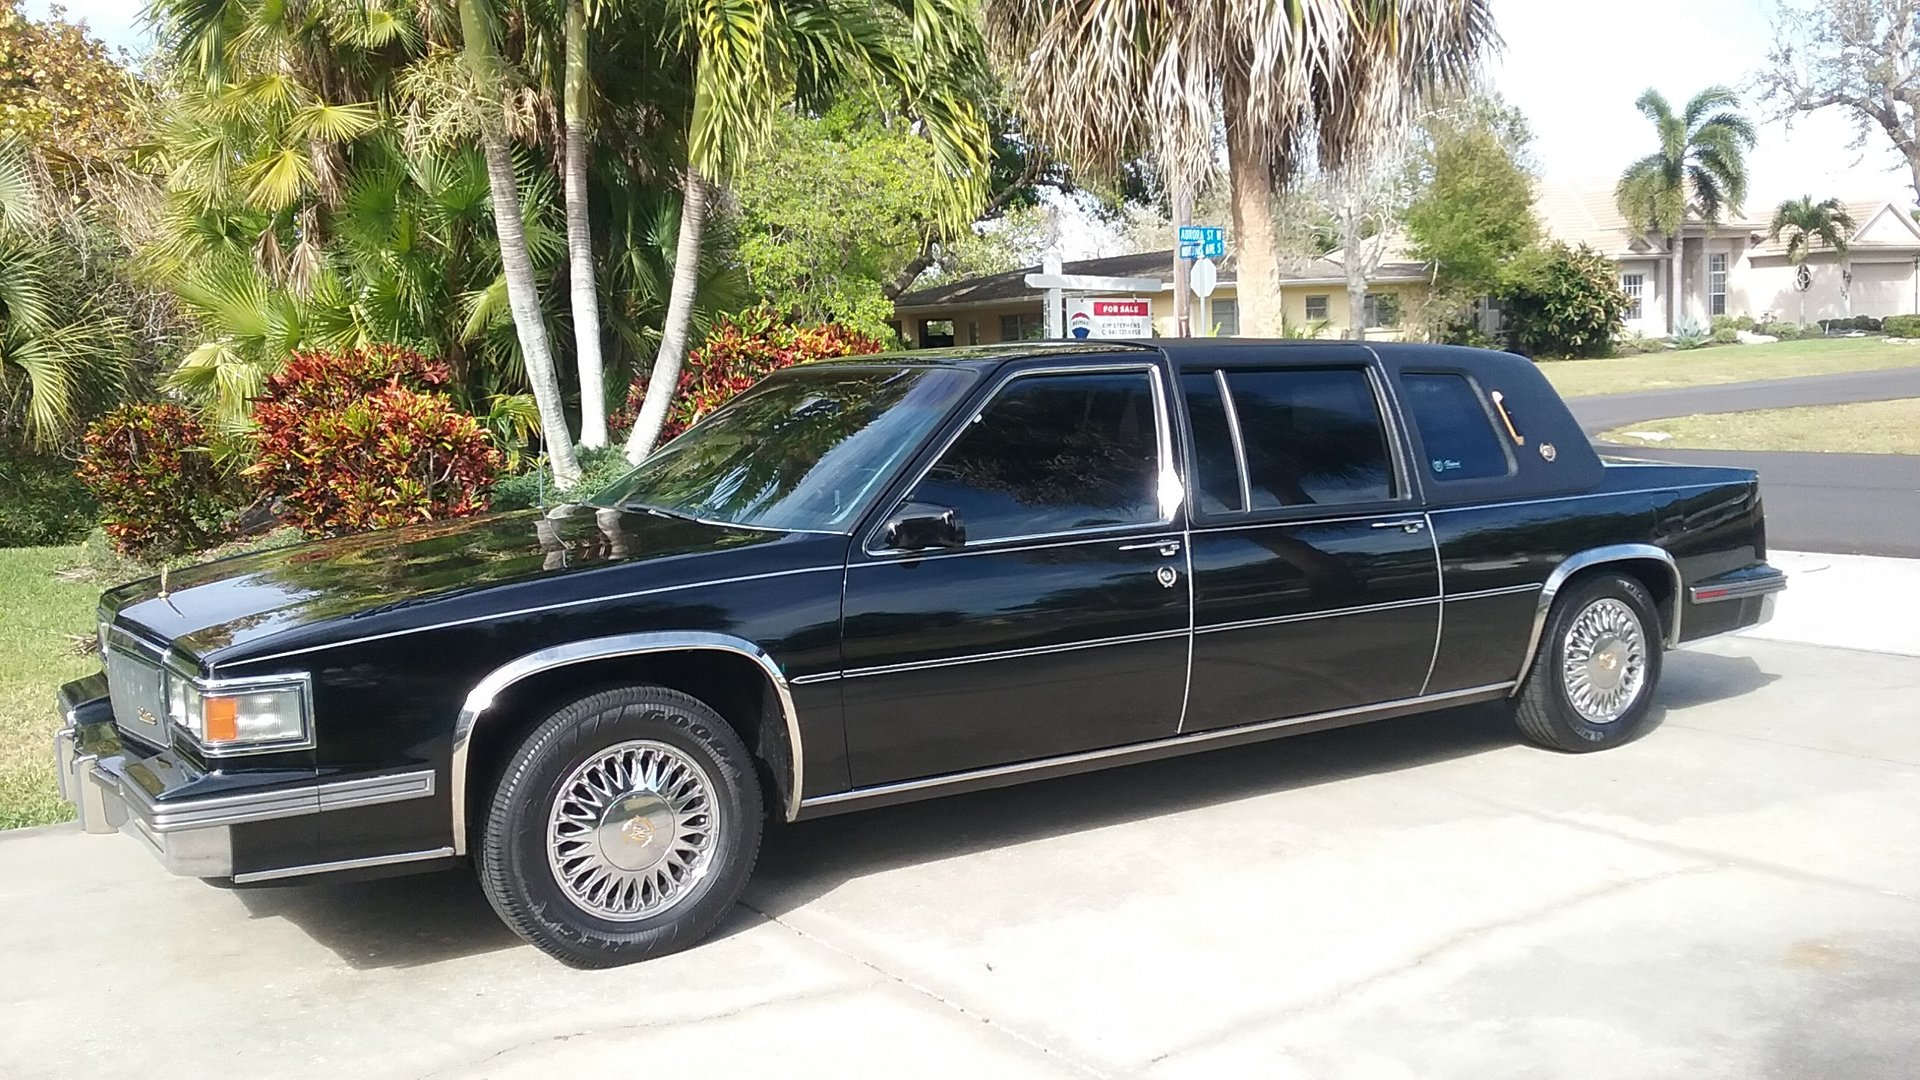 1986 cadillac fleetwood 75 limousine